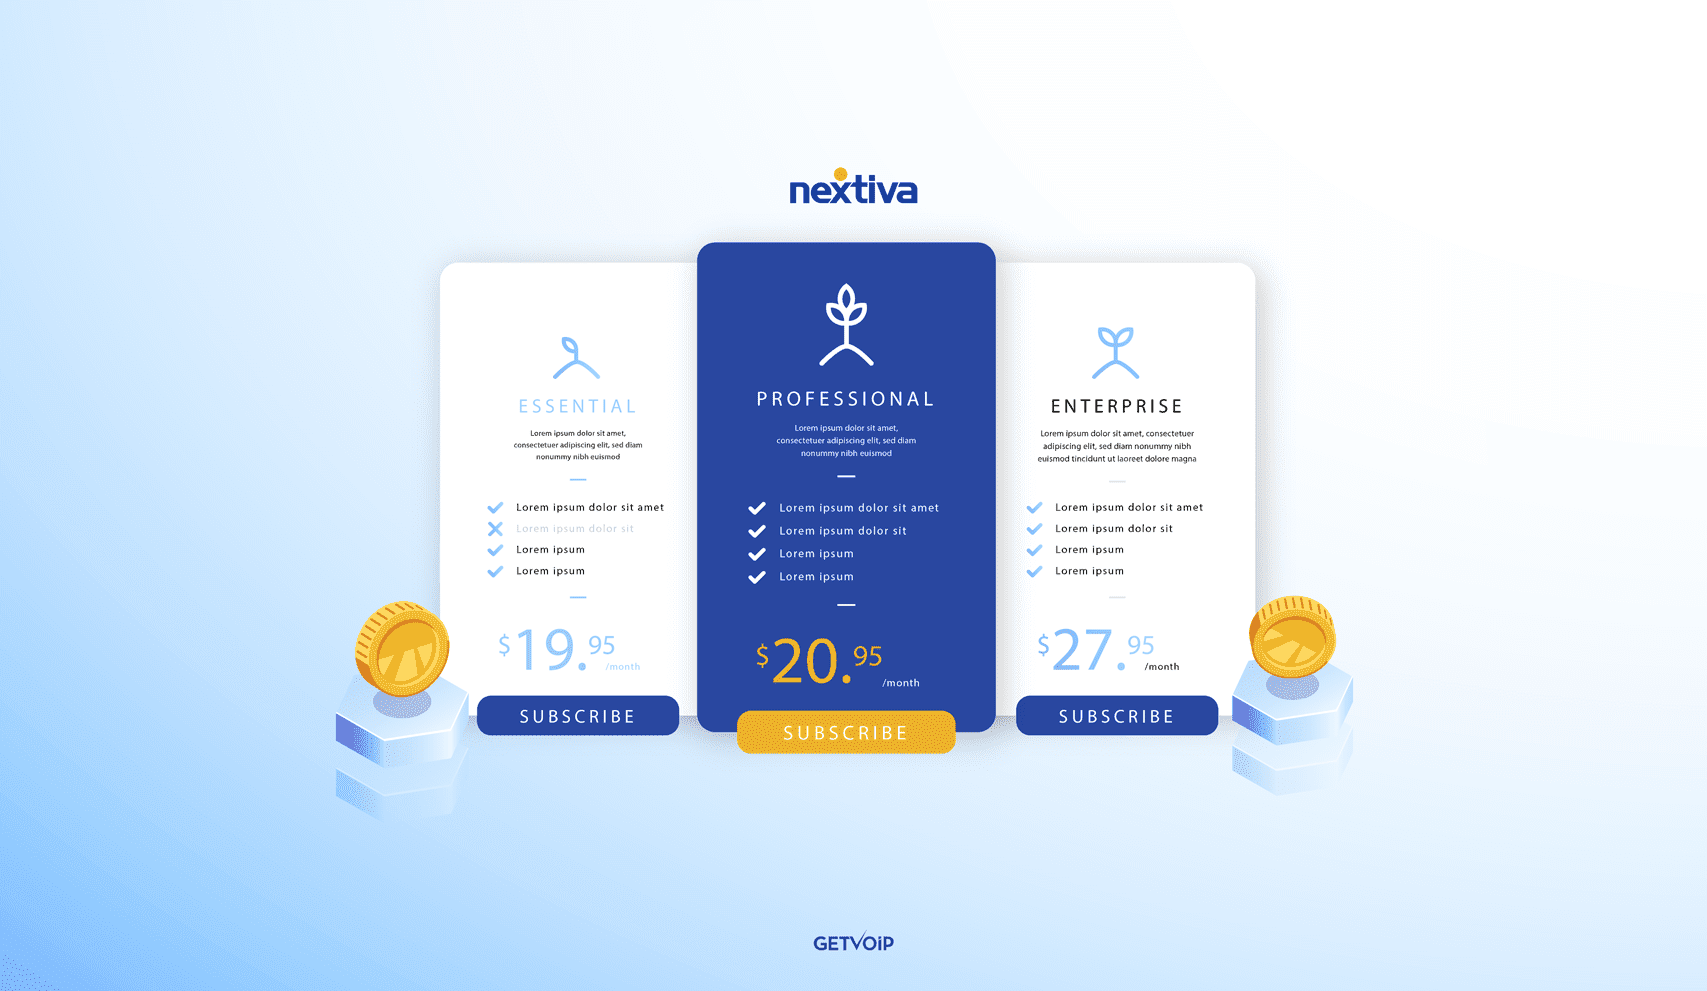 Nextiva Pricing, Plans, Features in 2021